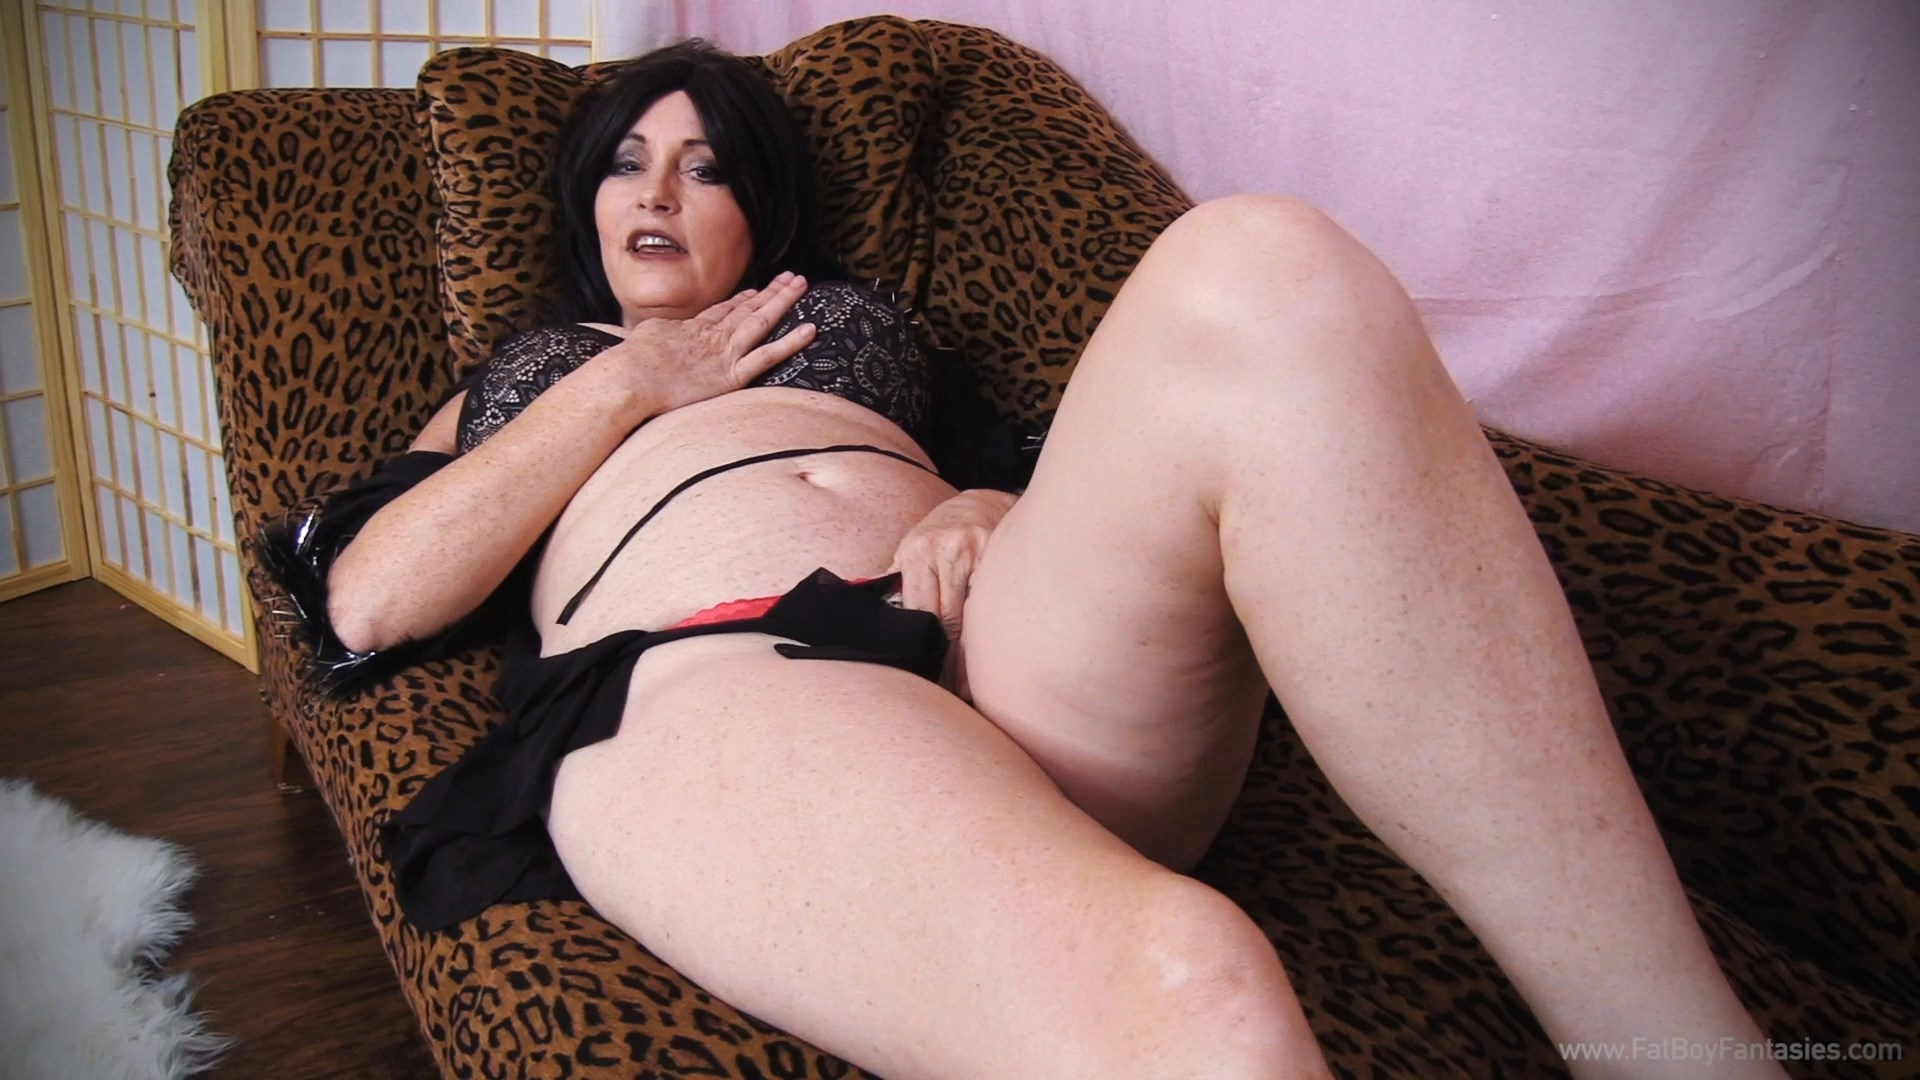 HFGMultimedia - Mommy's Reward for Fatty